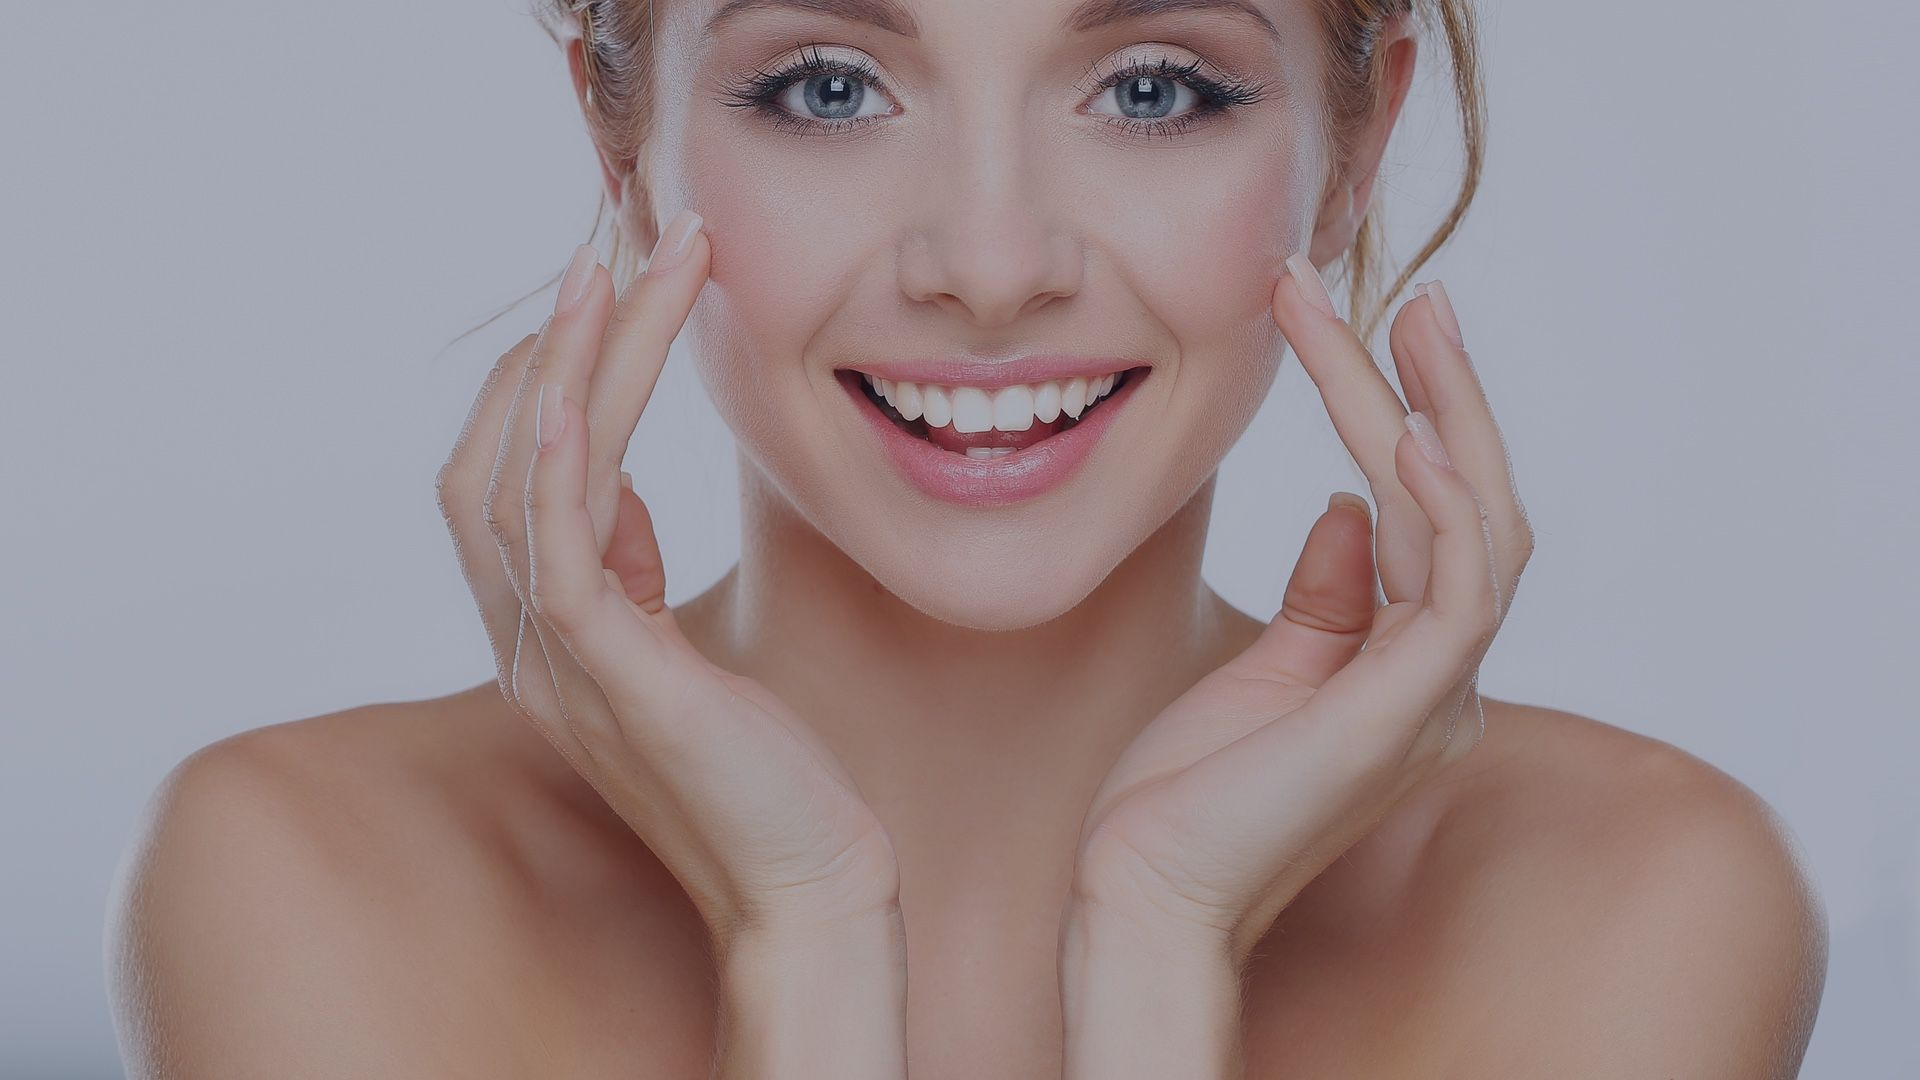 Laser Treatments for Acne & Acne Scars